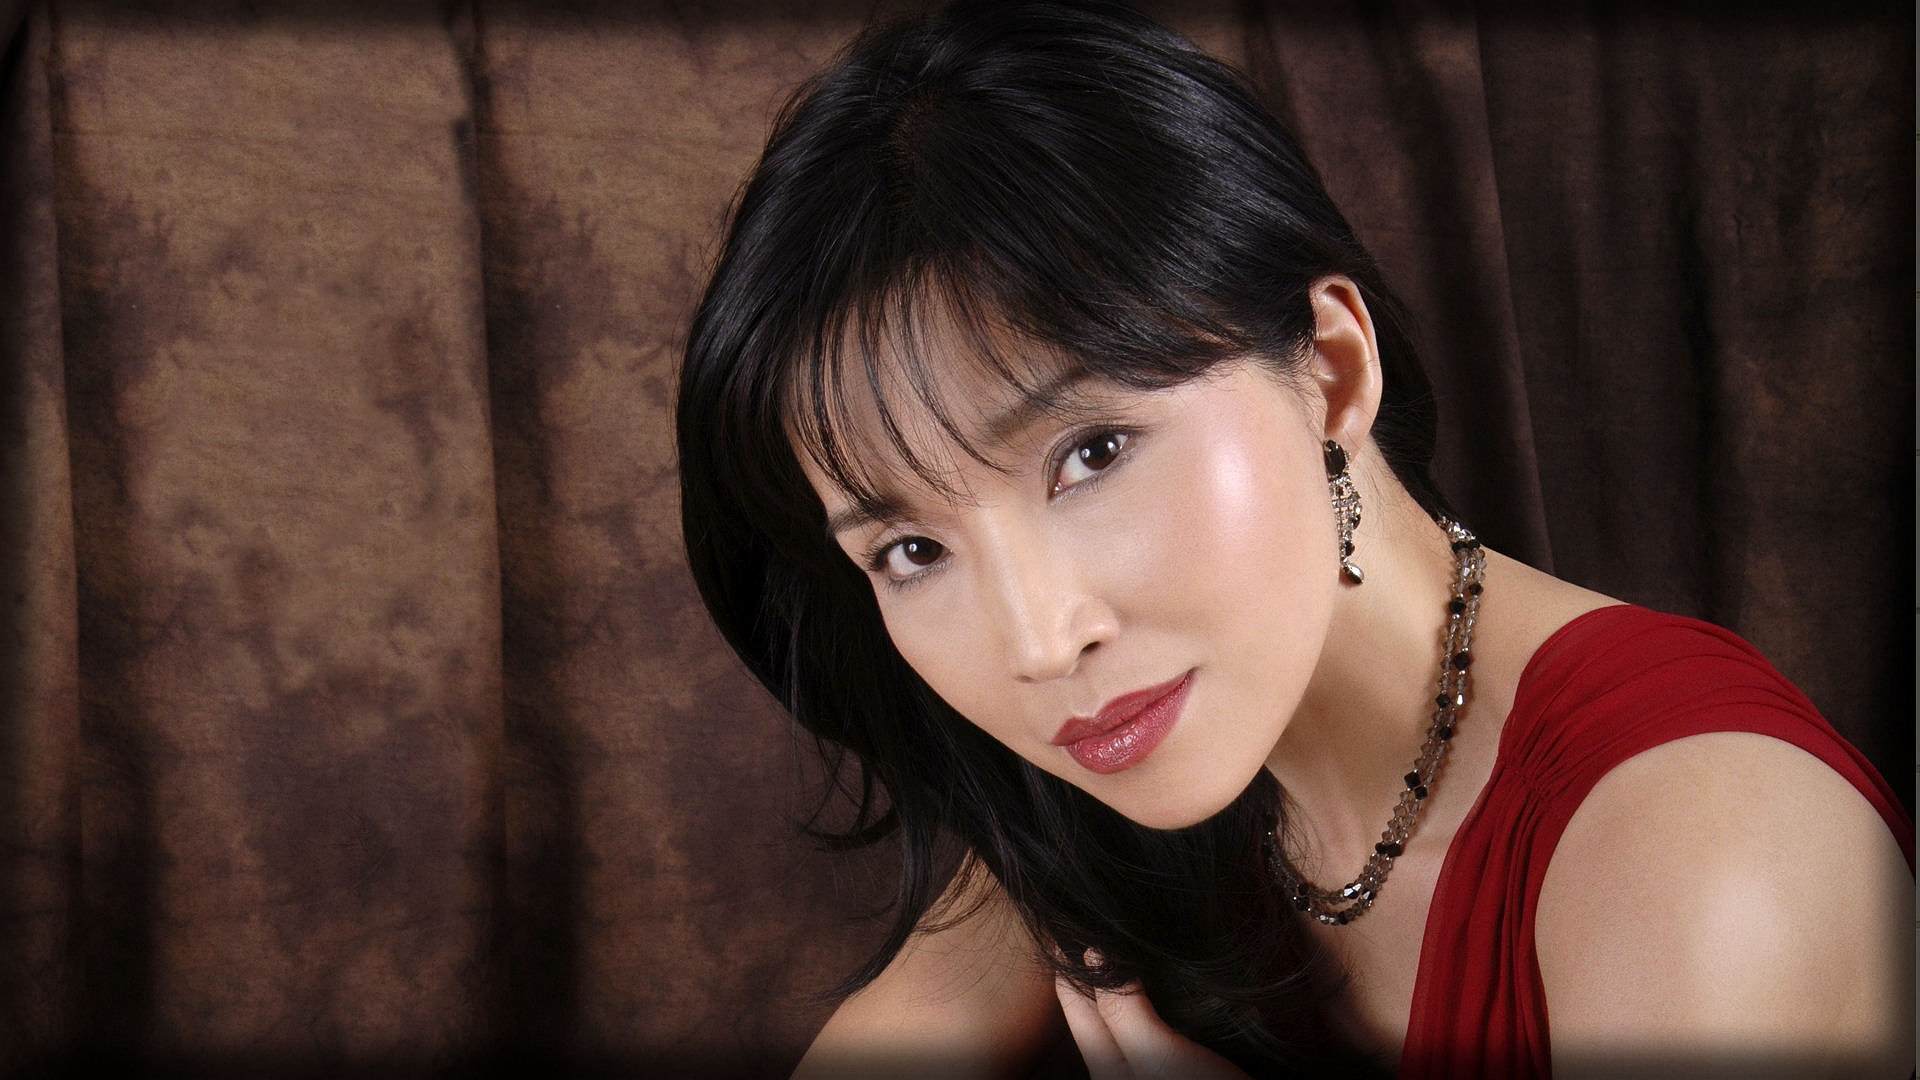 Wallpaper Of Cute Girl With Guitar 1 Keiko Matsui Hd Wallpapers Background Images